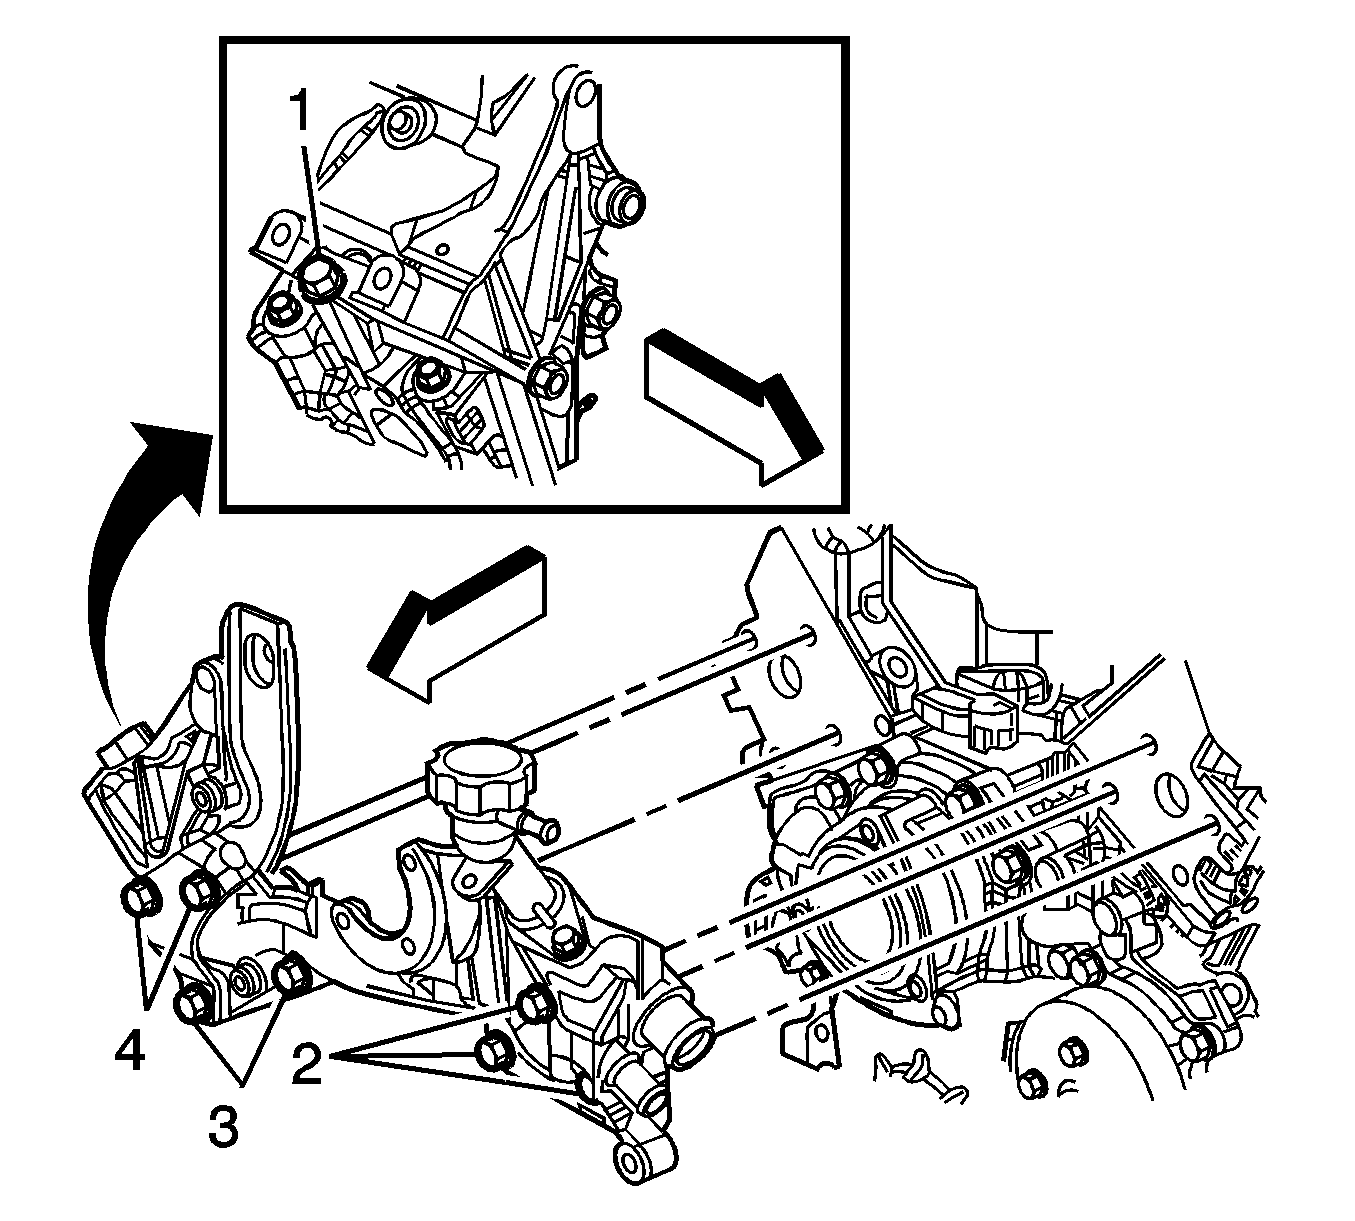 2007 Impala Engine Diagram - Wiring Diagram Data on 2007 impala rear door latch, 2006 chevy hhr engine diagram, 2002 chevy impala fuse diagram, 2007 impala cooling system, 2007 impala fuel pump, 2010 chevy impala diagram, 2007 impala ac diagrams, 2007 impala headlight bulb replacement, 2007 jeep liberty fuse diagram, 2007 impala shift solenoid, 2006 chevy impala engine diagram, 2007 impala parts catalog, 2007 impala back bumper, 2000 impala fuse diagram, chevrolet engine diagram, 2007 impala fuel tank, 2007 impala accessories, 2007 impala power steering, 2007 pontiac g6 fuse diagram,